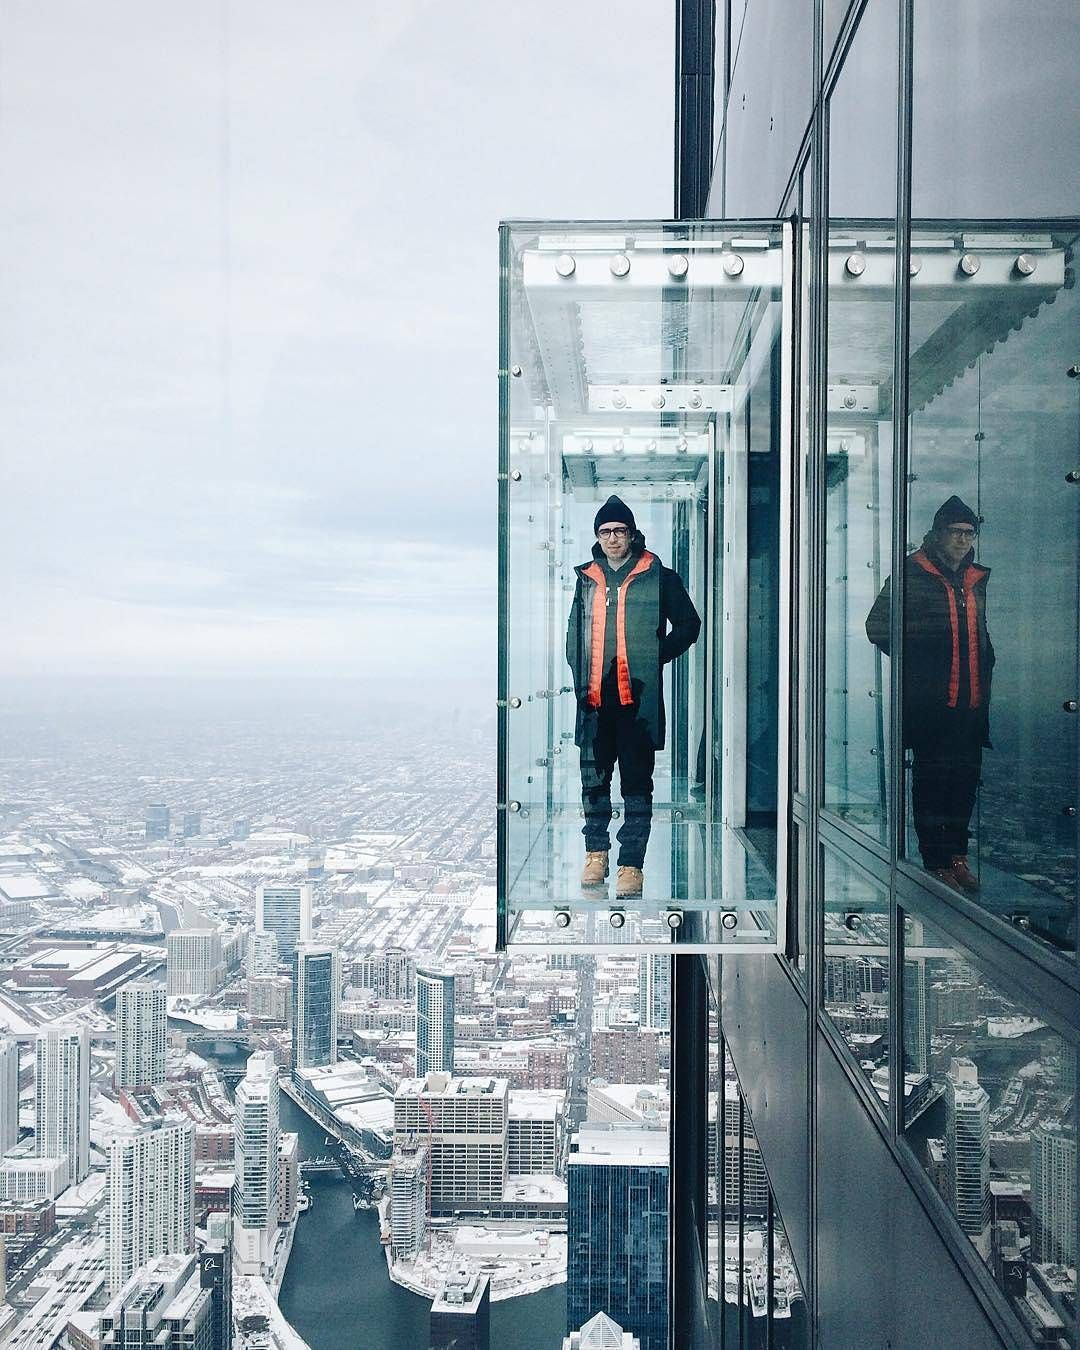 From the 103rd floor of the Willis Tower petewilliams